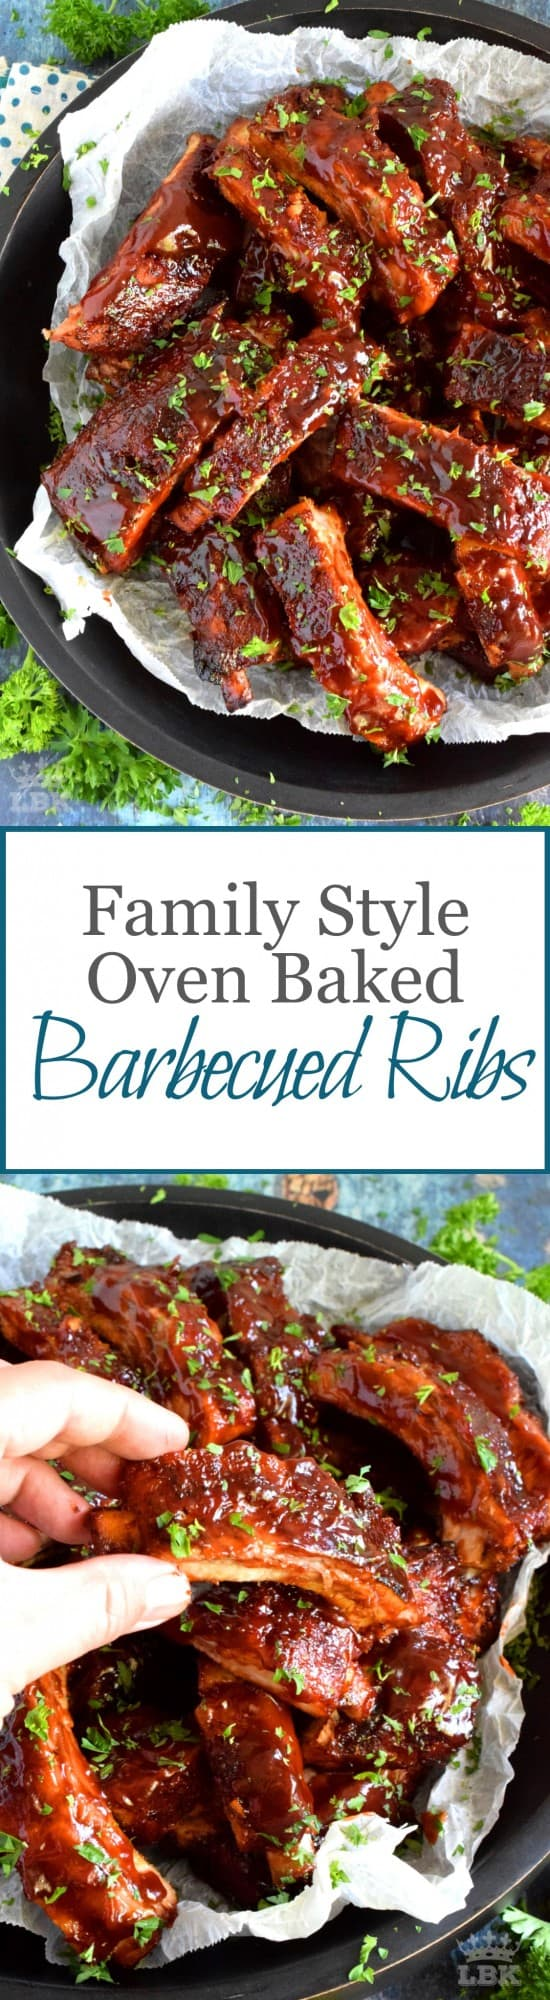 Family Style Oven Baked Barbecued Ribs